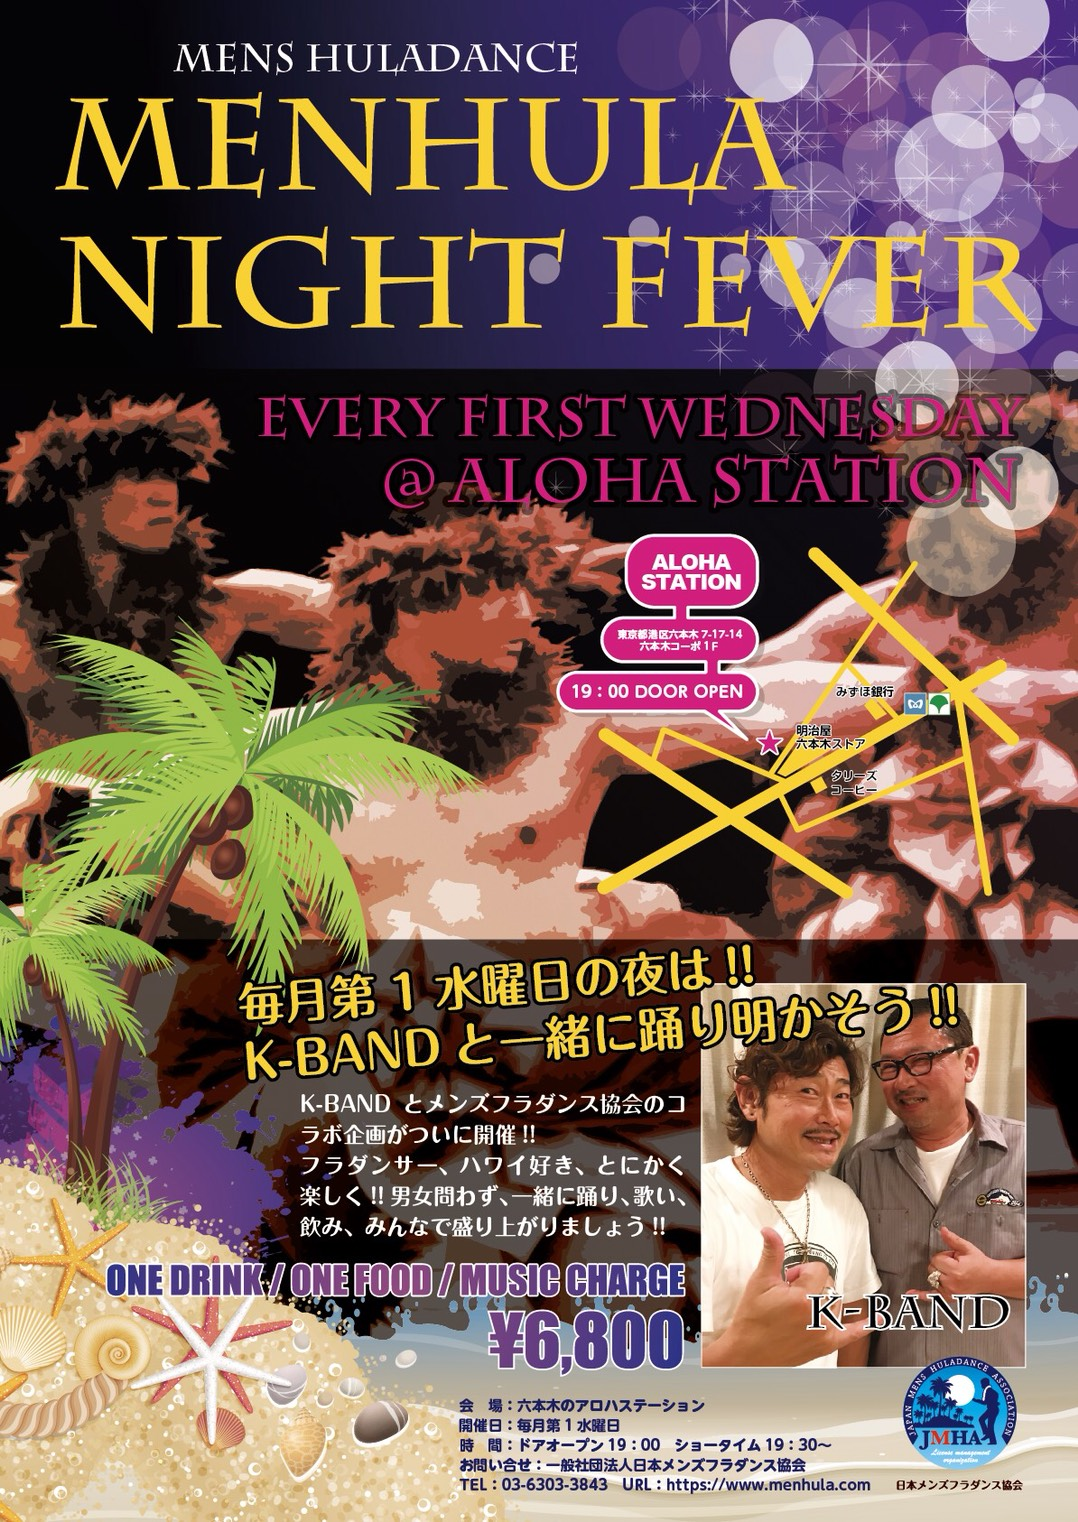 MENHULA NIGHT FEVER メンフラナイト in Aloha station六本木